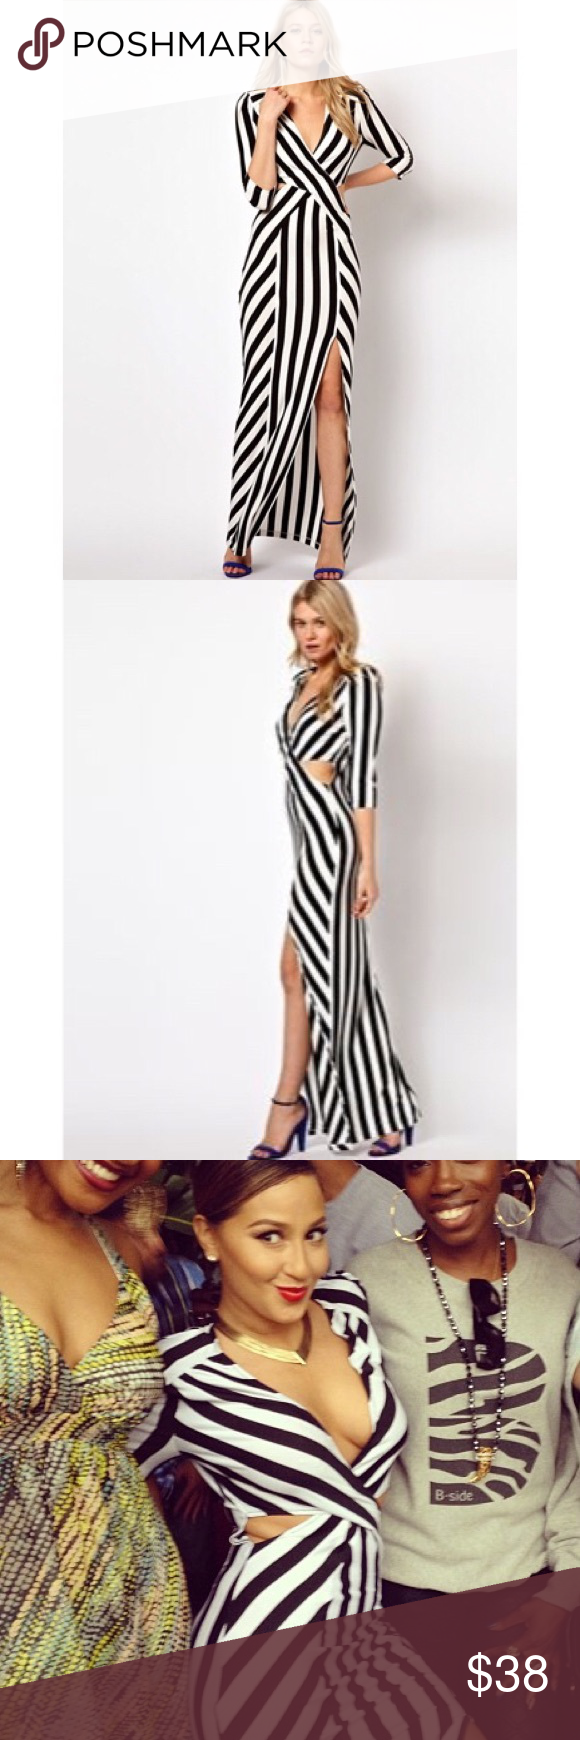 ASOS Striped Maxi Dress Worn once, size M, really long maxi, I'm 5'10 and it hits the floor. Bought on ASOS, brand is LOVE ASOS Dresses Maxi